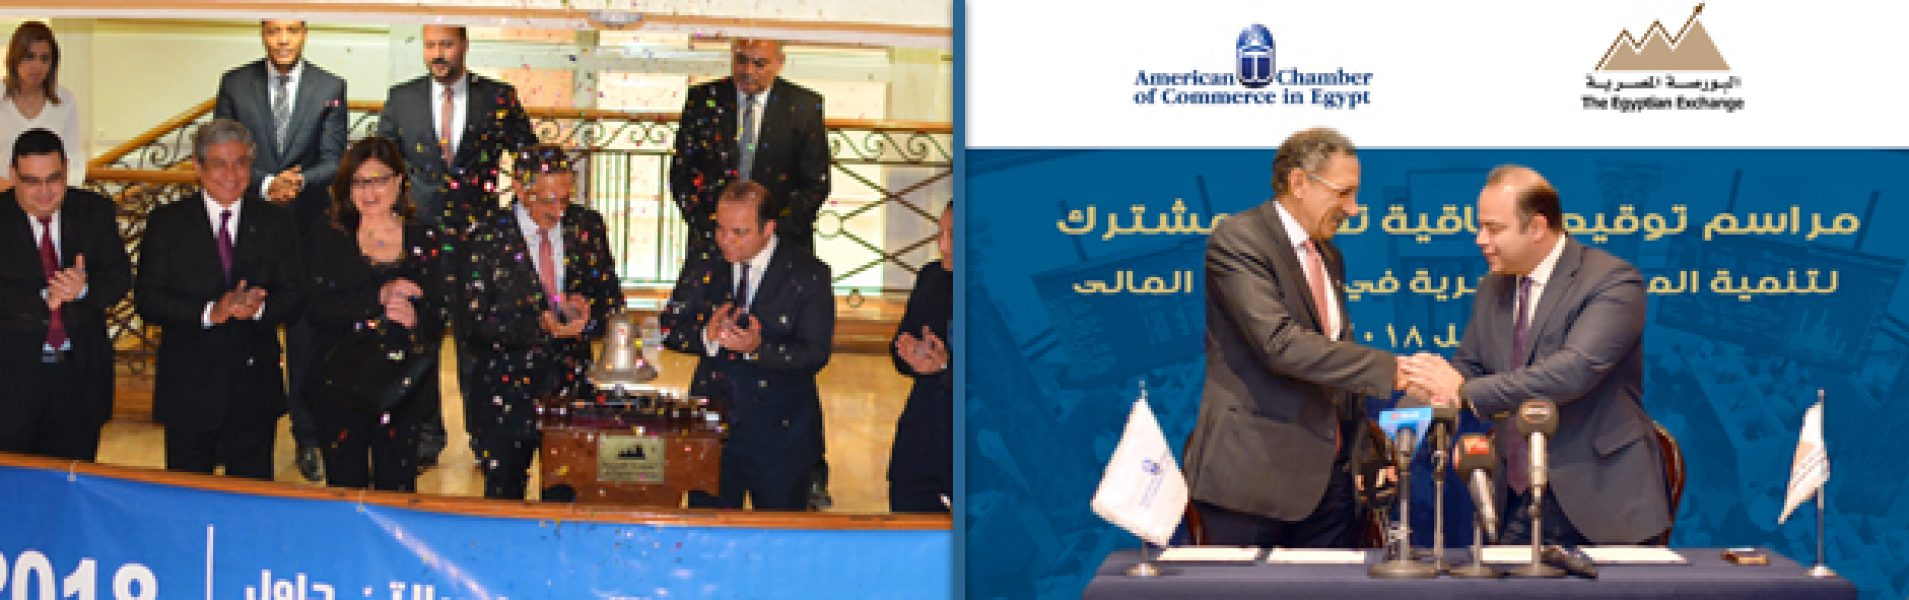 Egyptian-Exchange-Cooperates-with-the-American-Cha